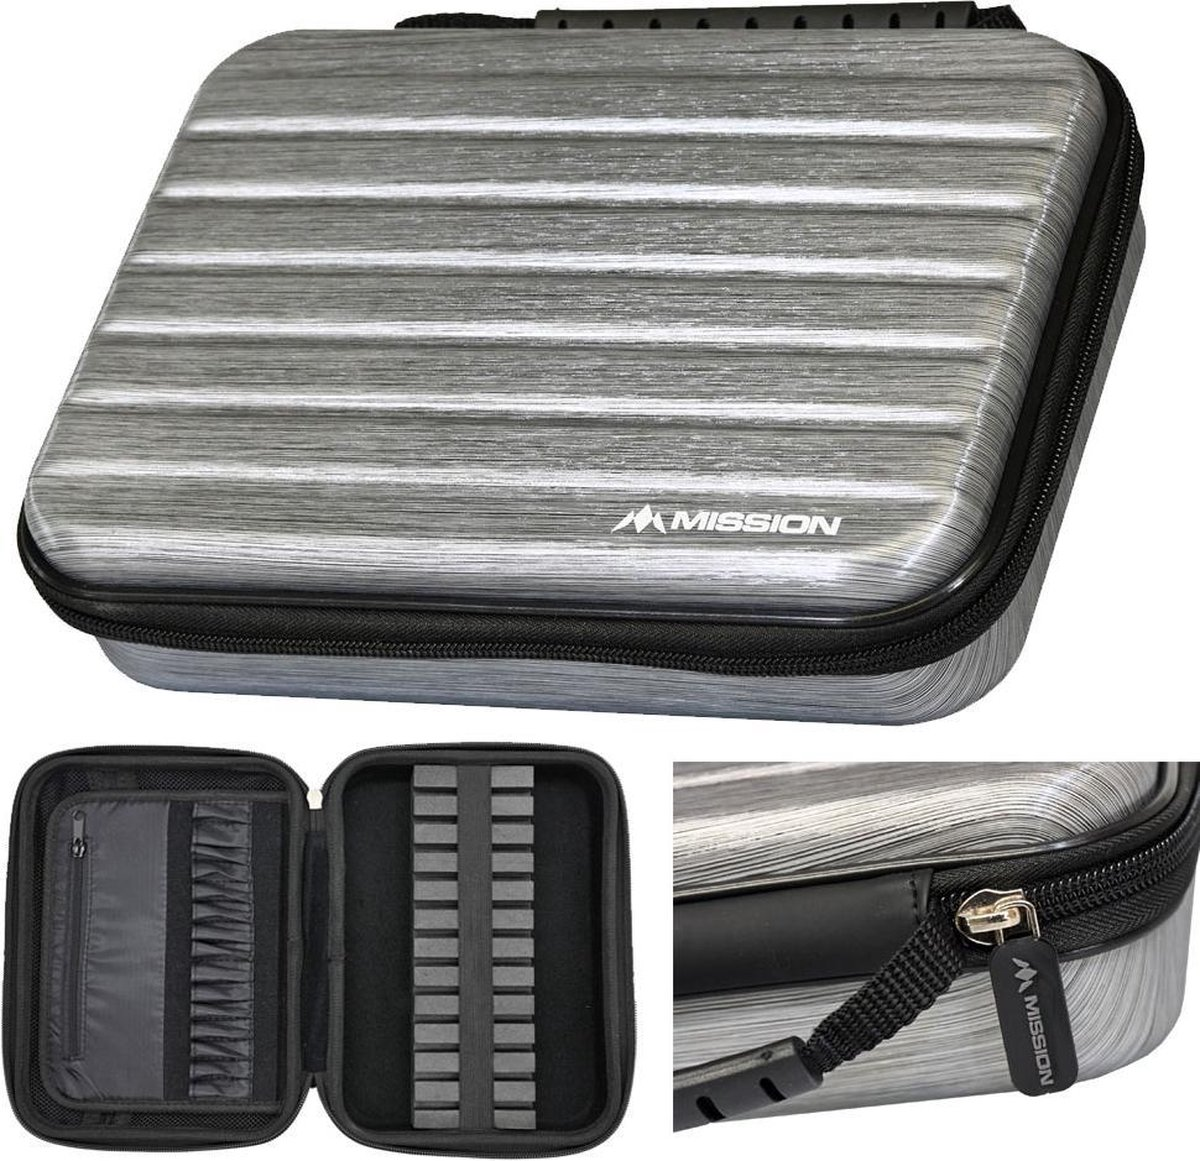 Mission Dart case ABS-4 Silver